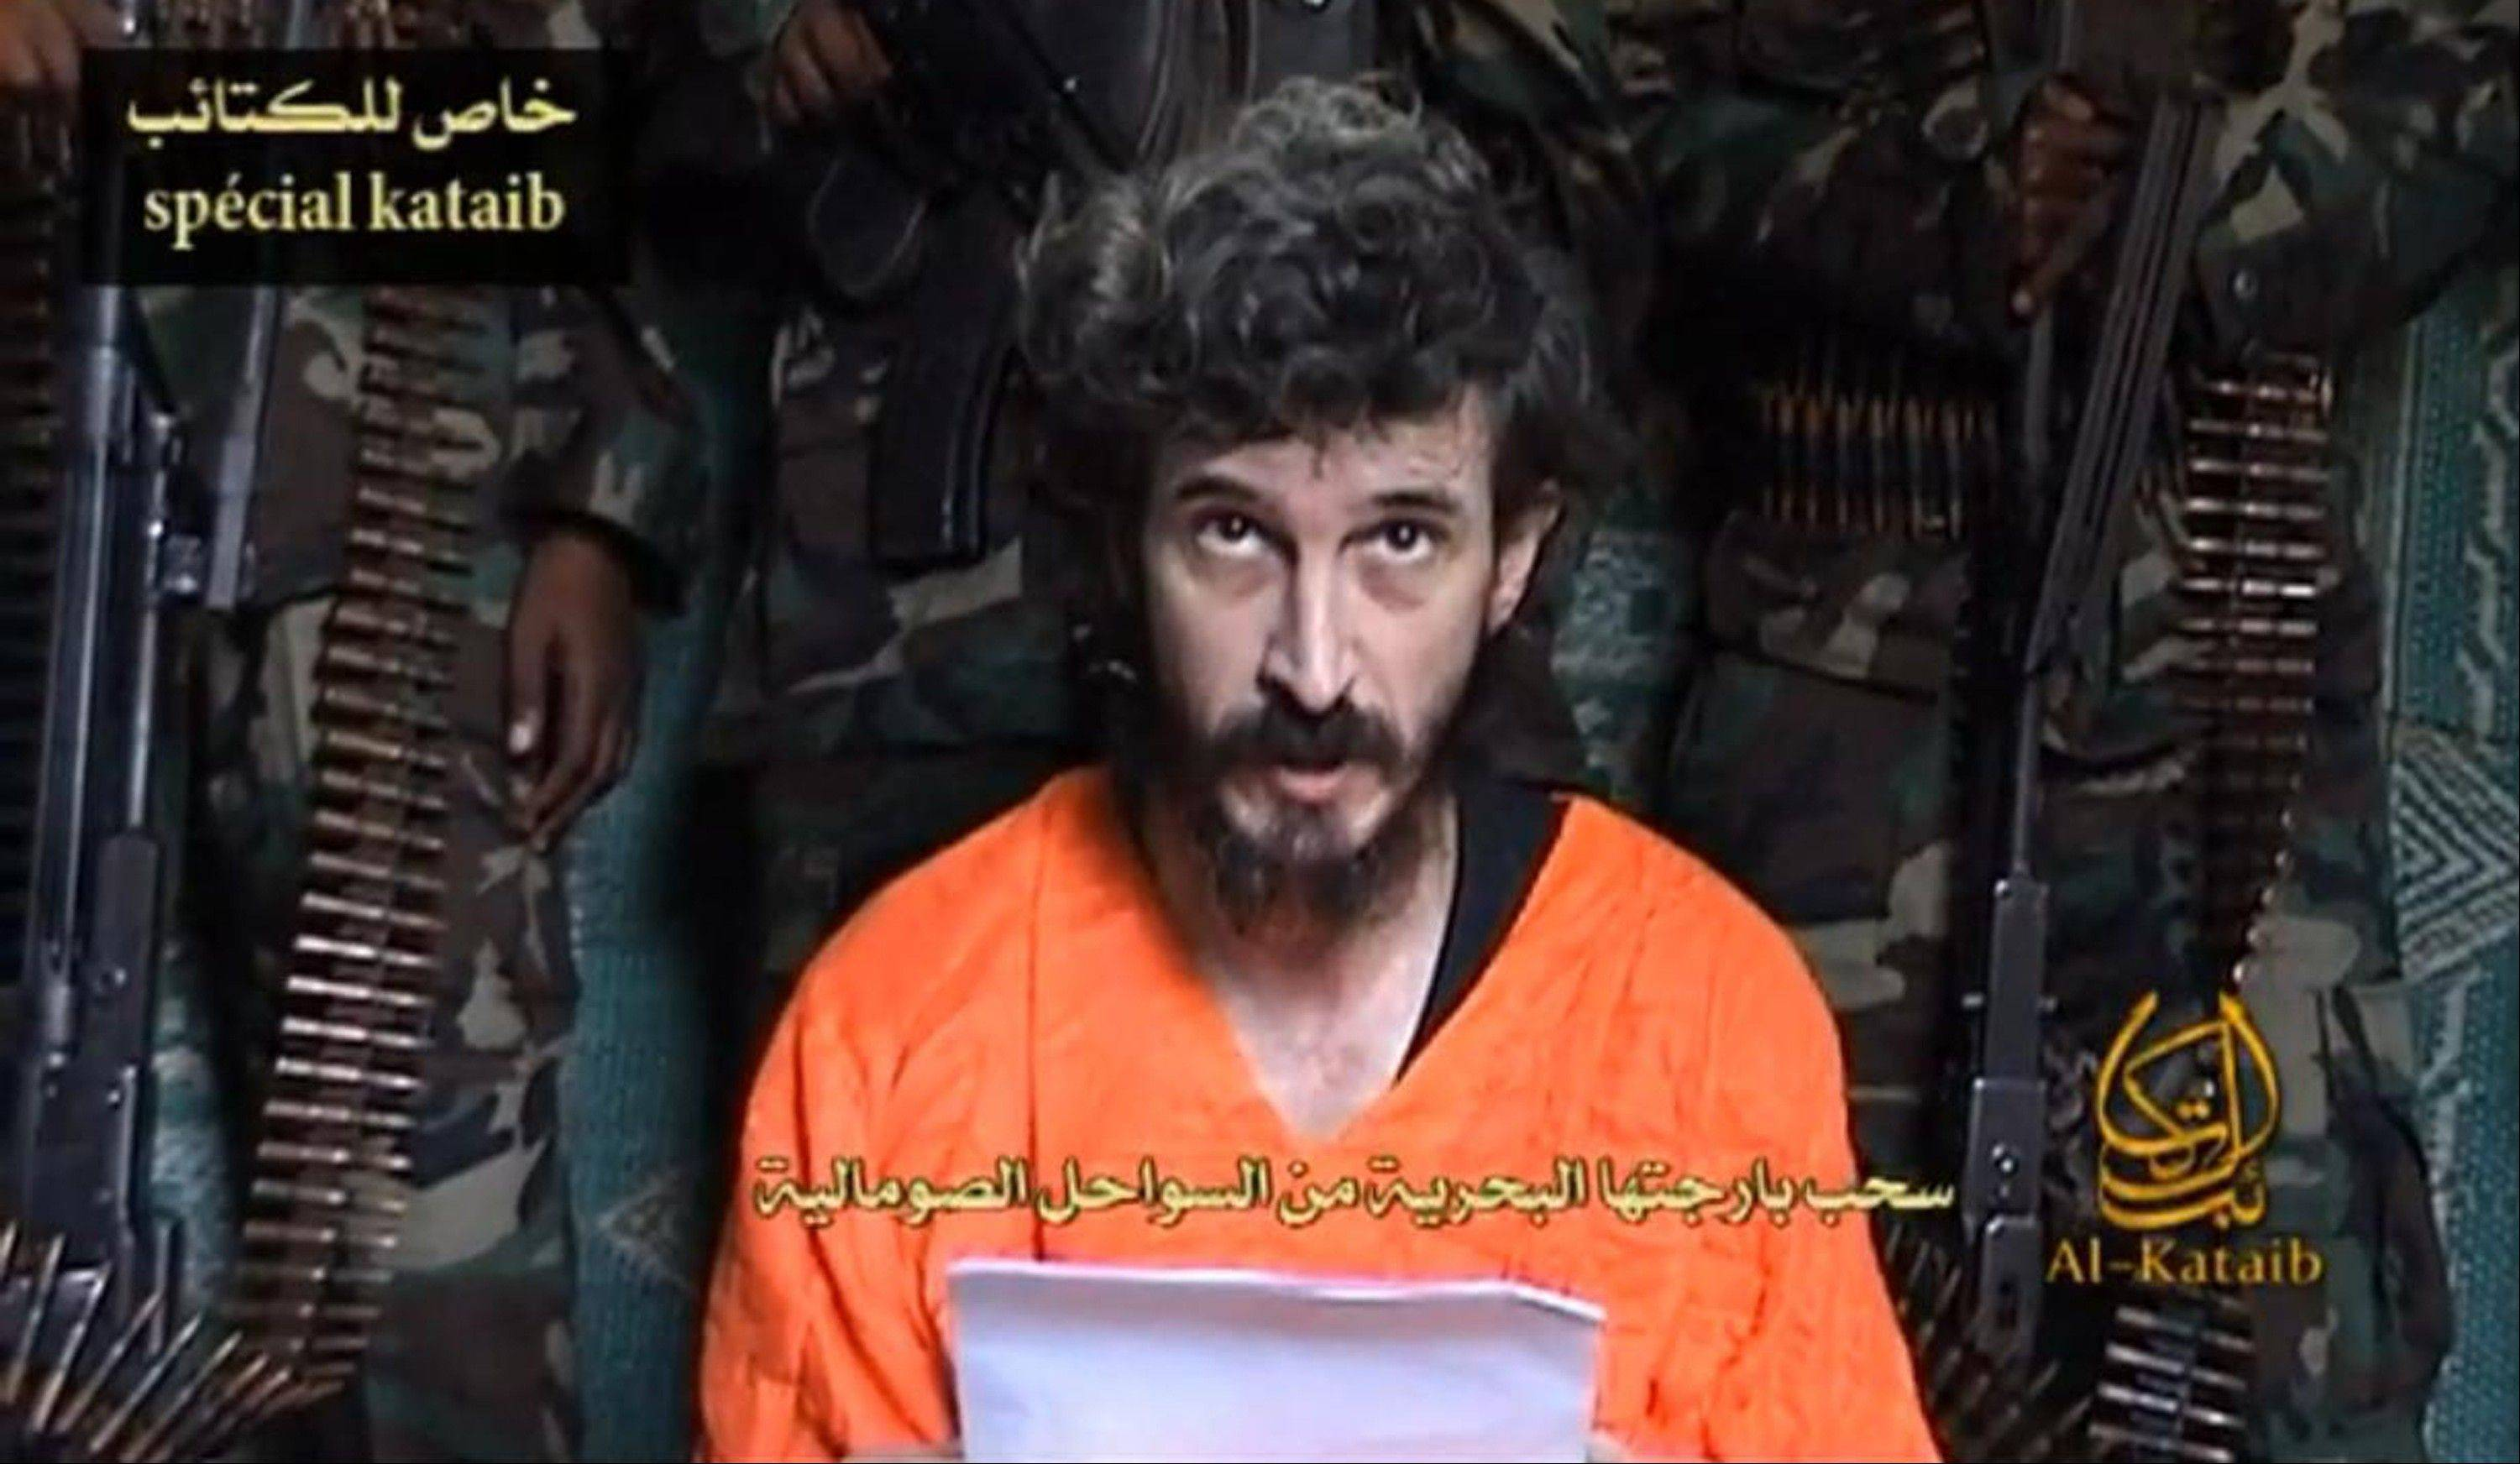 Associated Press/June 9 2010 A man identified as French security agent Denis Allex pleads for his release more than two years ago, from the Somali militant group al-Shabaab.